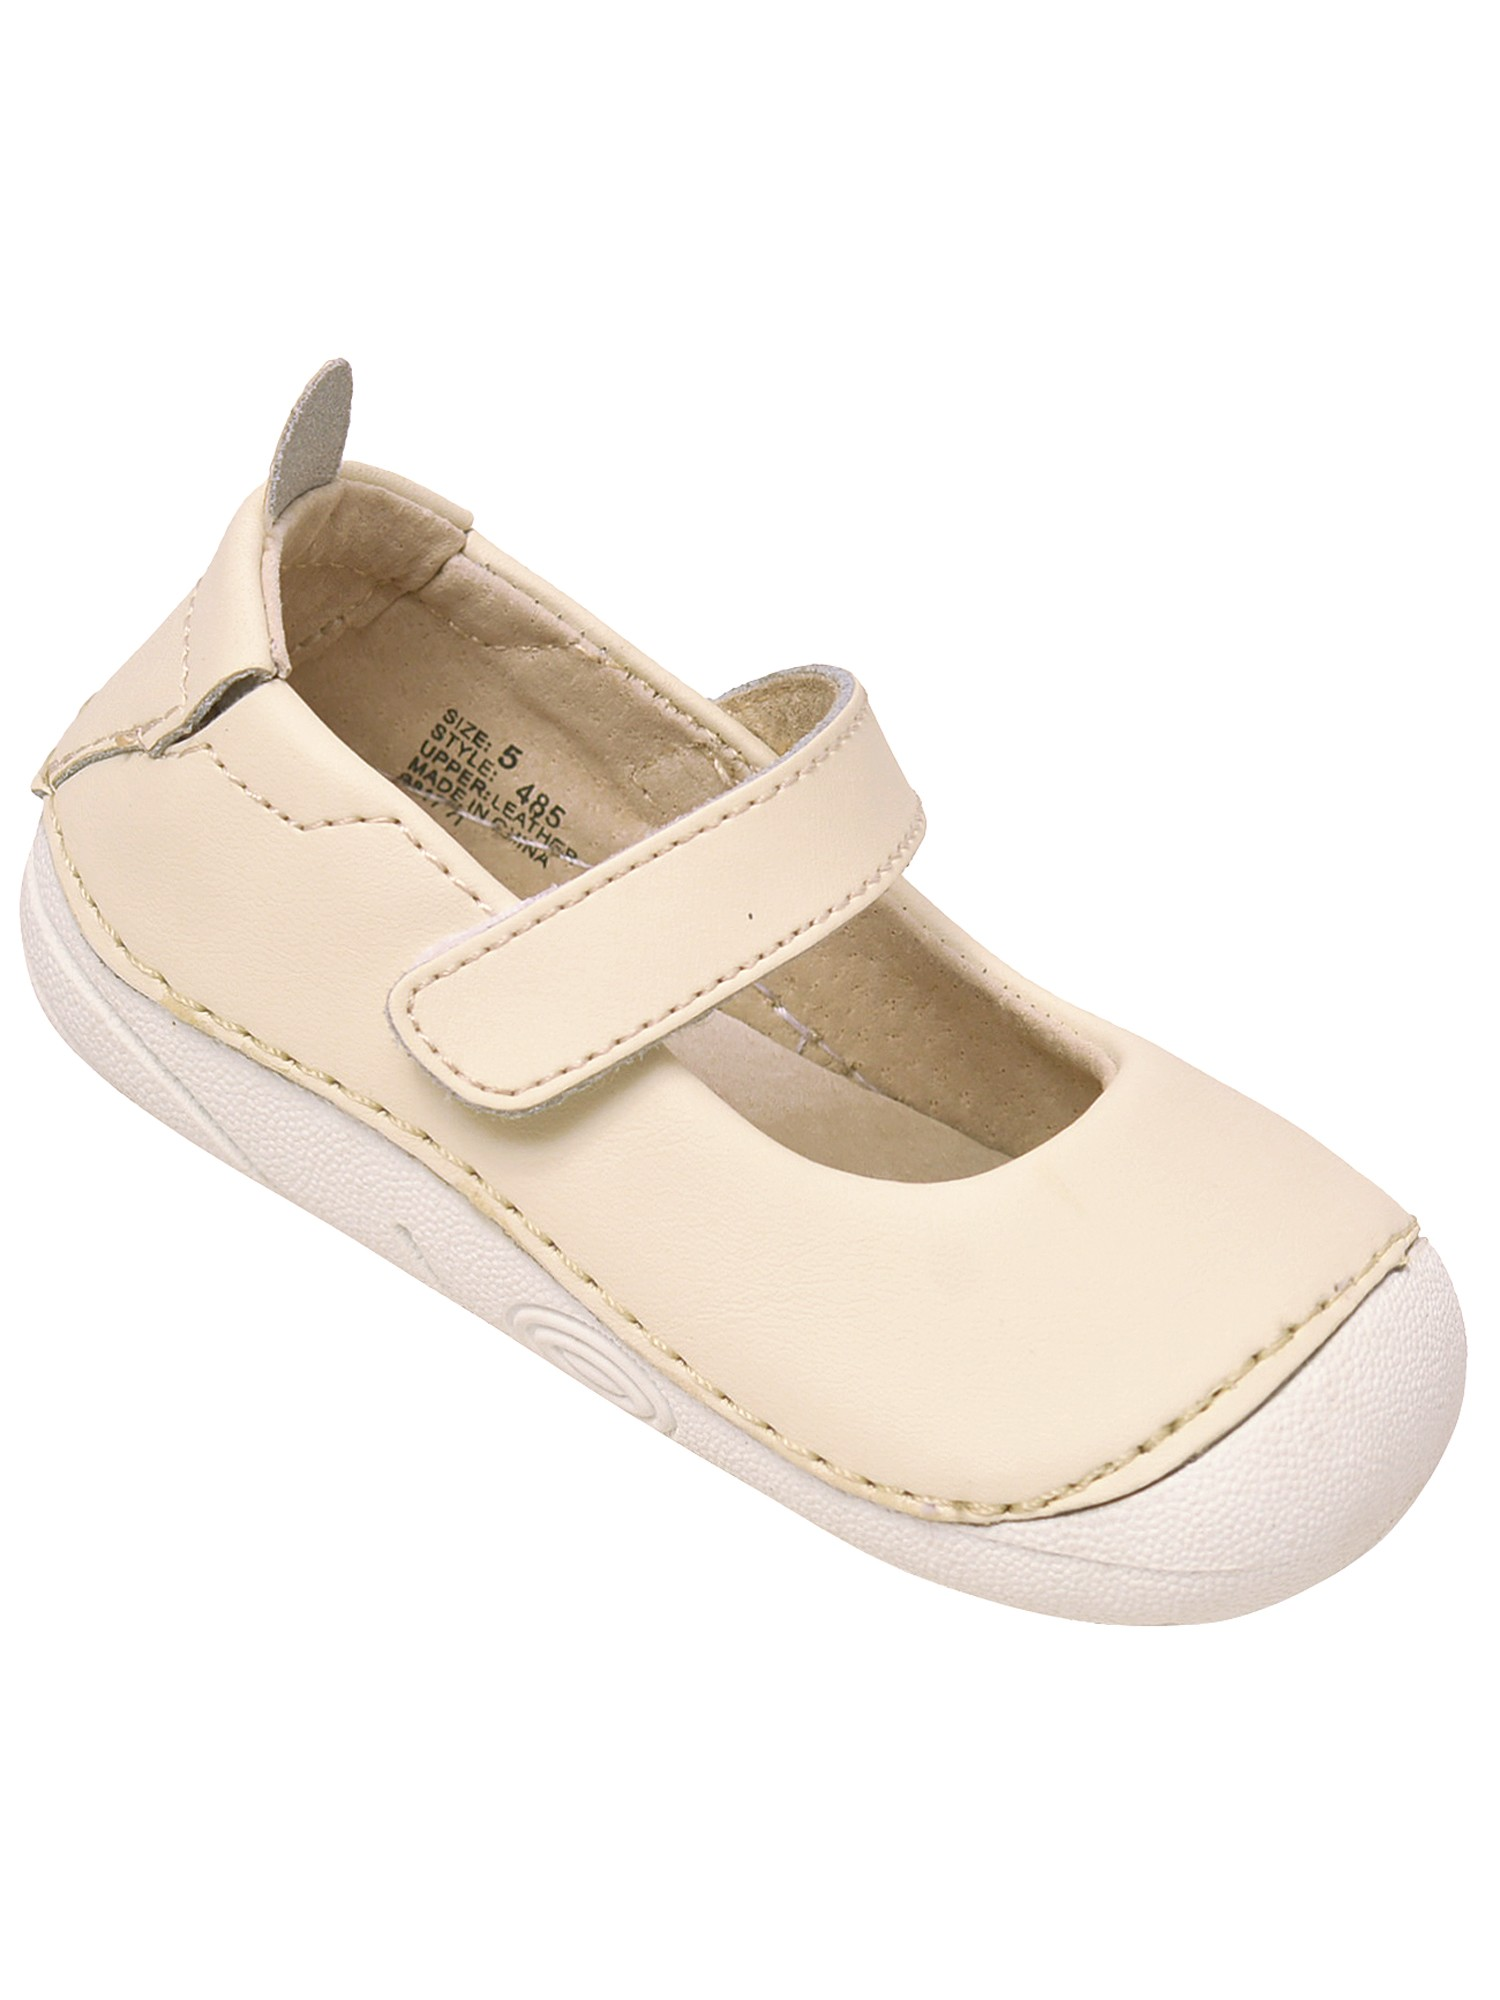 LAmour Girls White Scalloped Trim Leather Mary Jane Shoes 4 Baby-10 Toddler